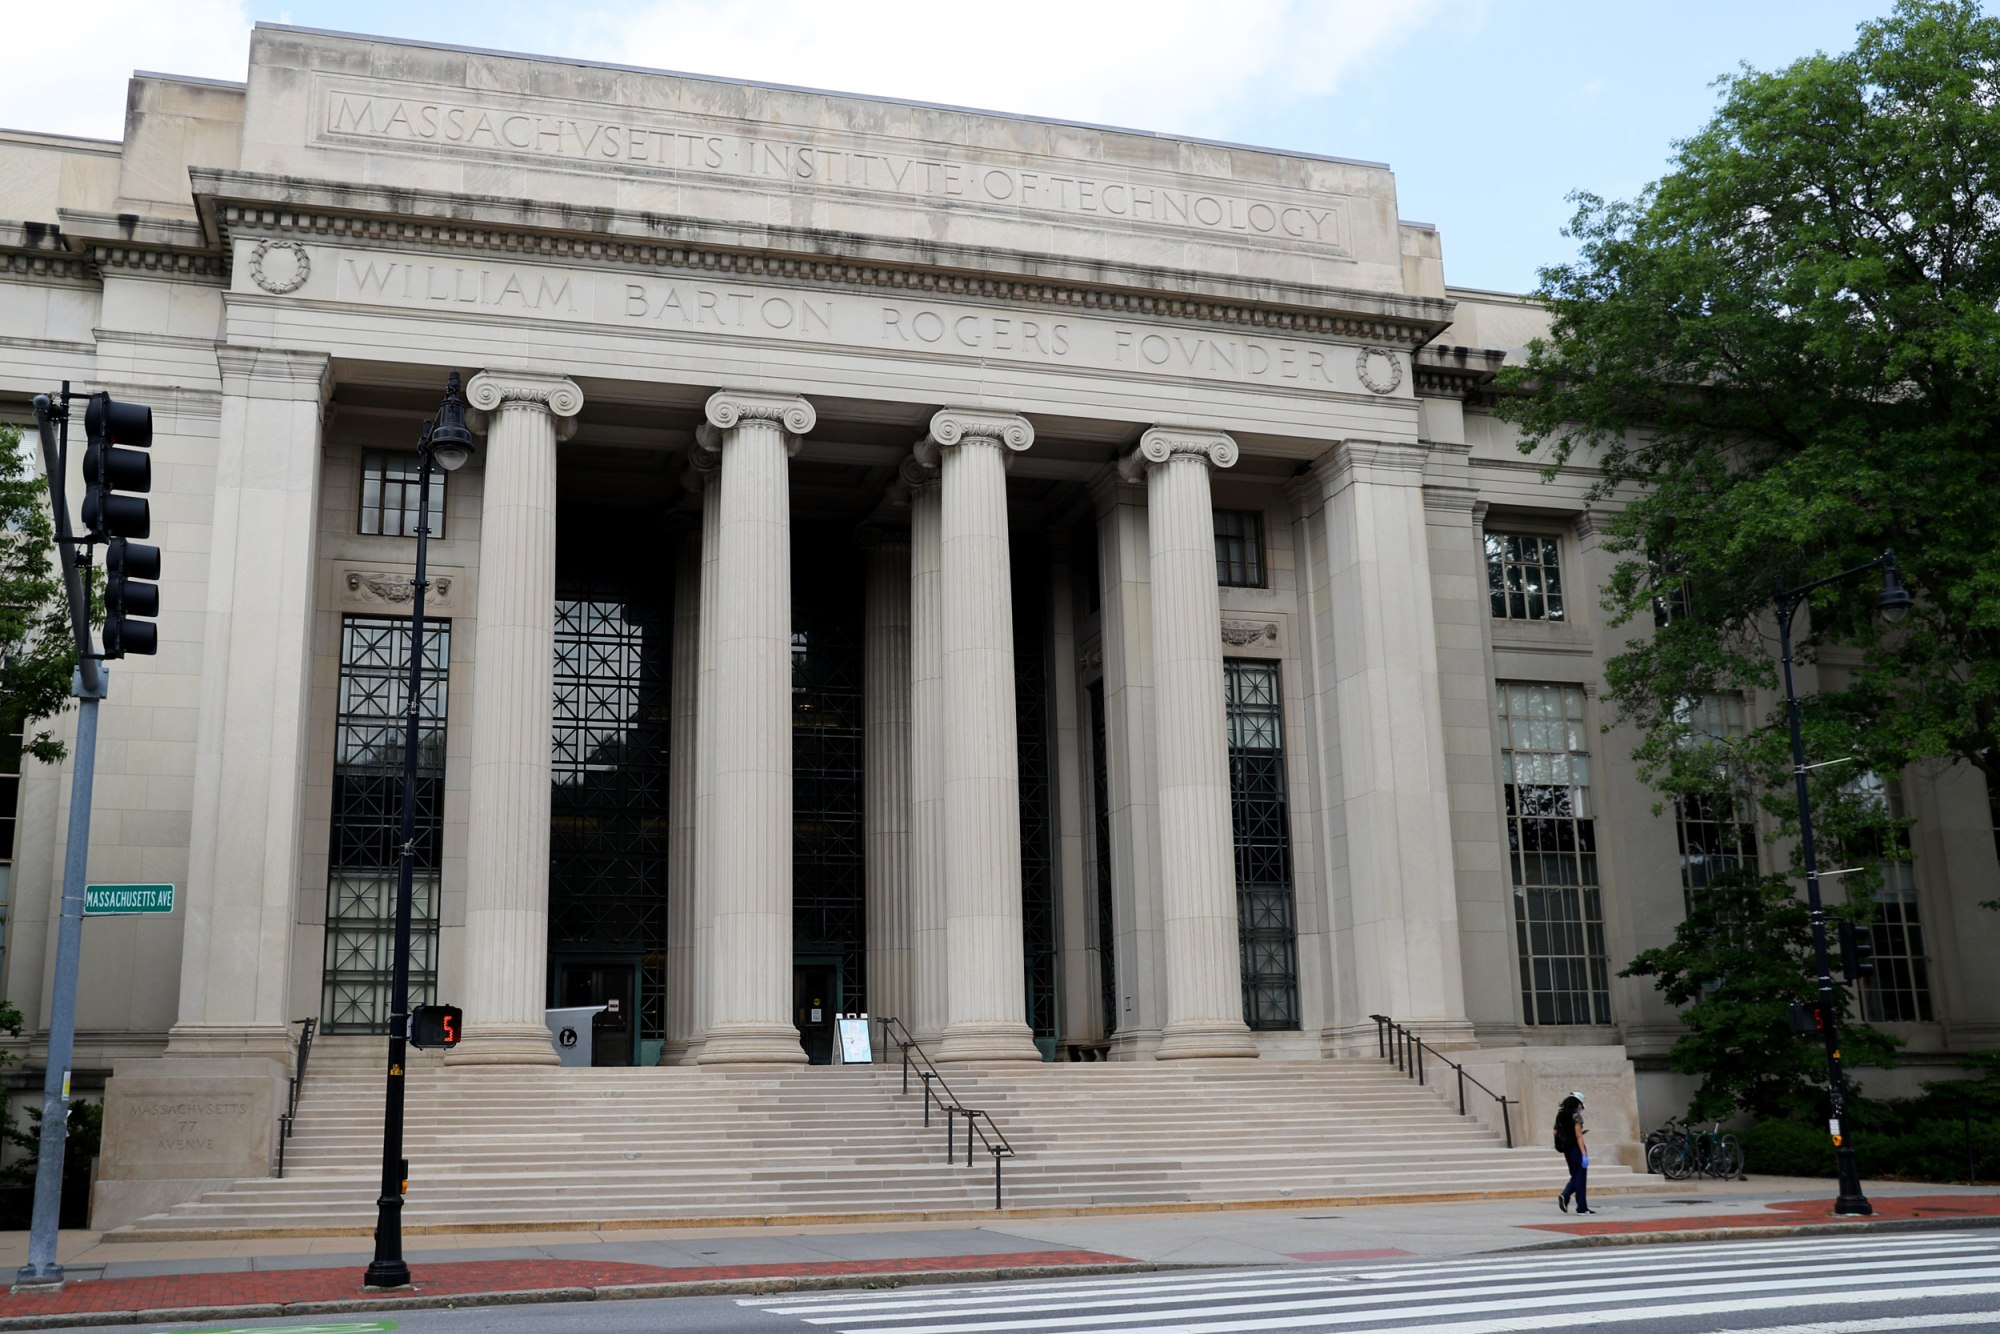 The move was announced as the resolution in a lawsuit brought by Harvard University and the Massachusetts Institute of Technology.Maddie Meyer / Getty Images